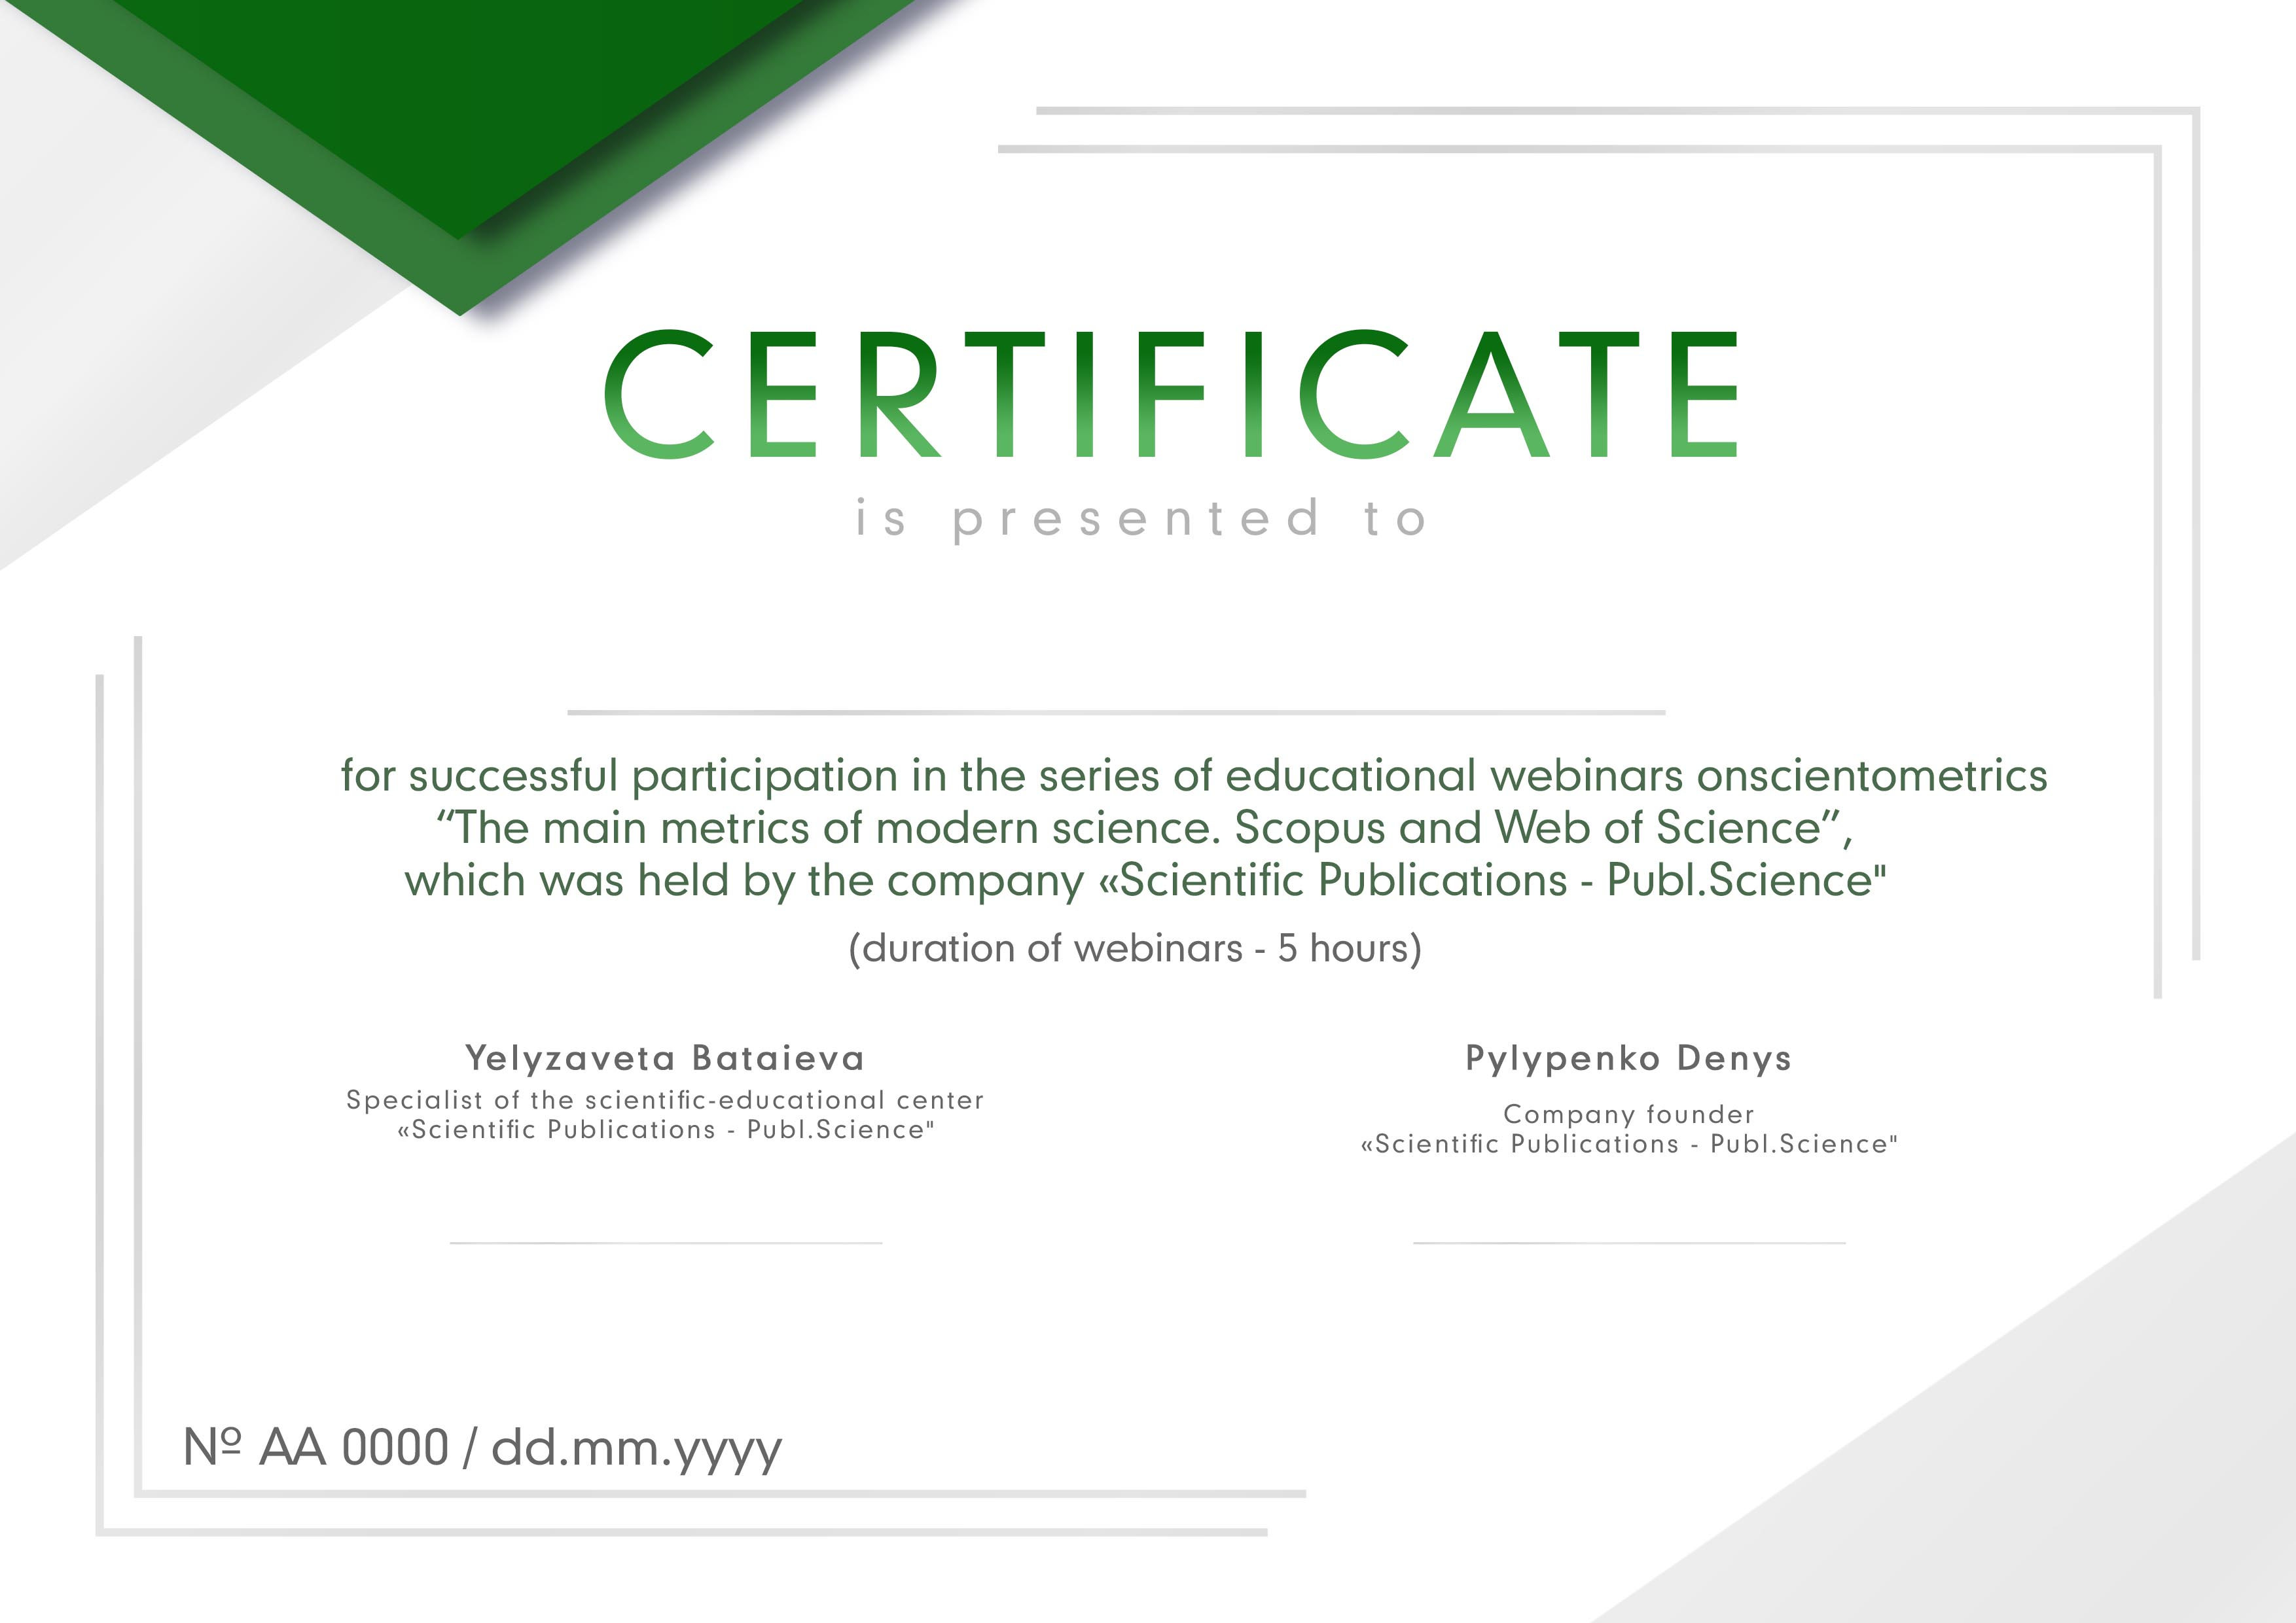 Example of certificate issued by Certification center of company Scientific Publications - Publ.science